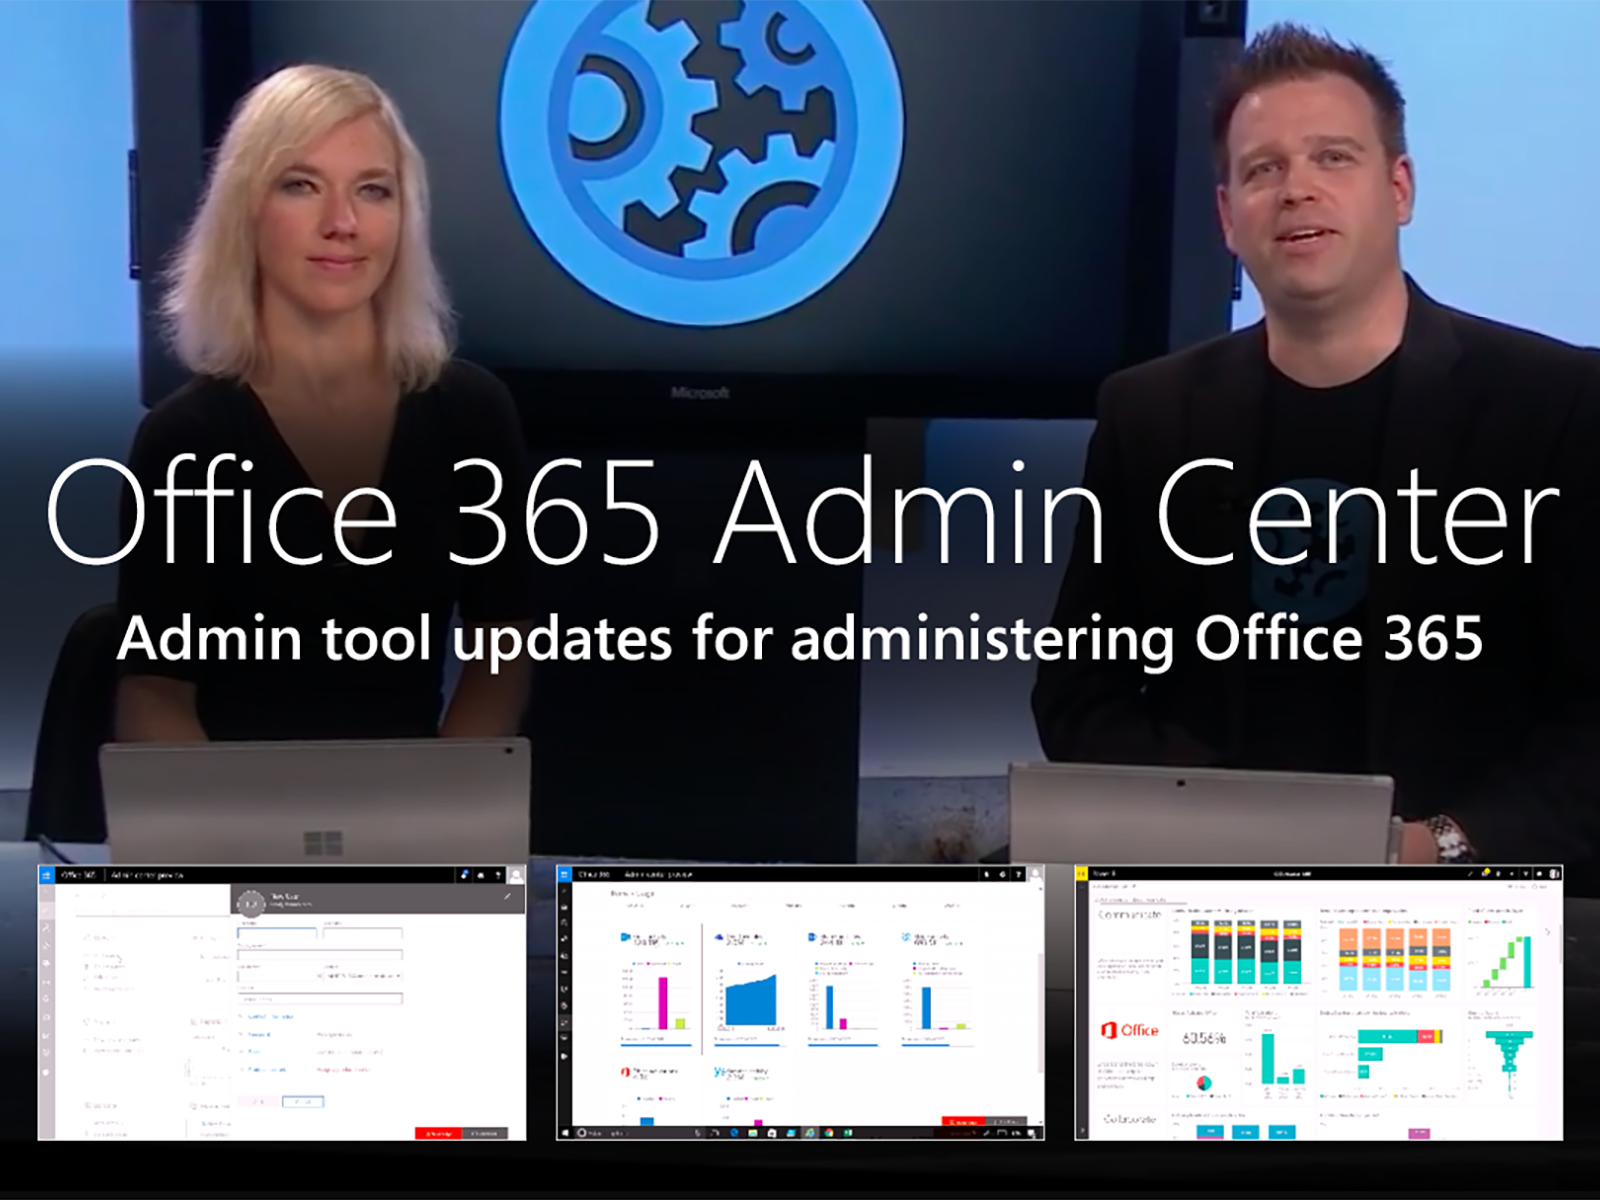 Artwork for Updates to the Office 365 Admin Center